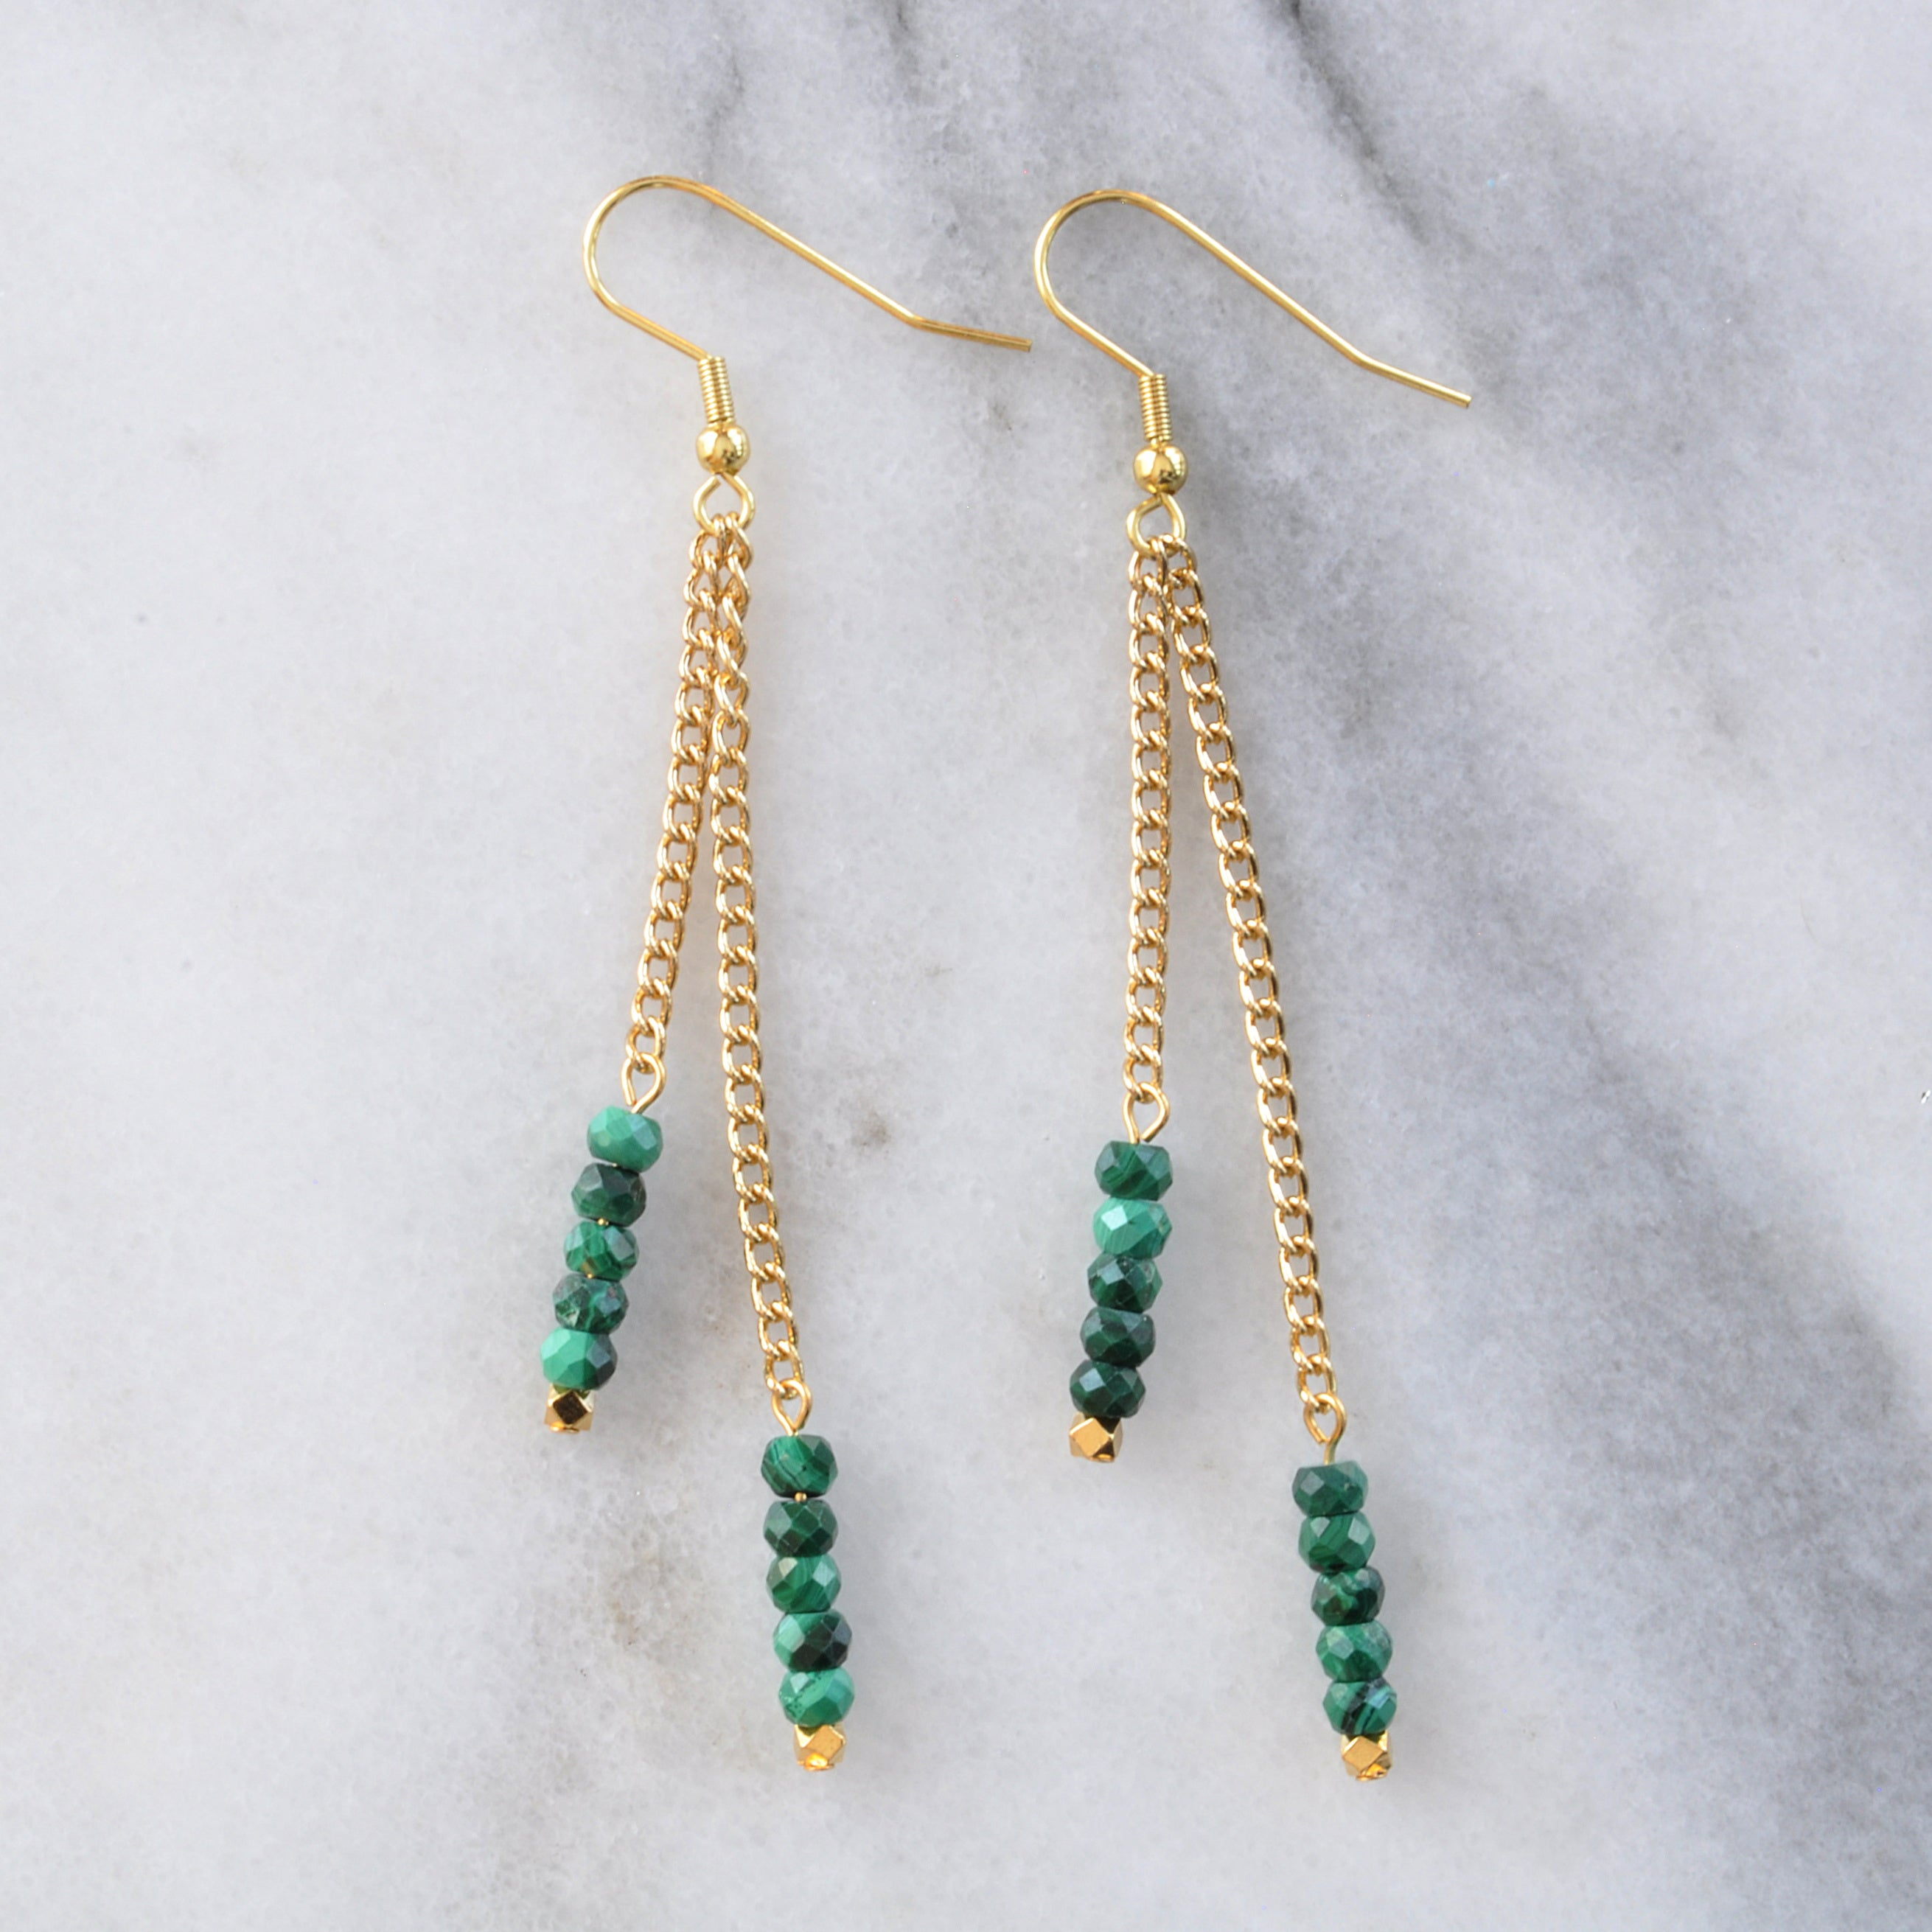 Libby & Smee Gemstone Gold chain Earrings available with Malachite beads